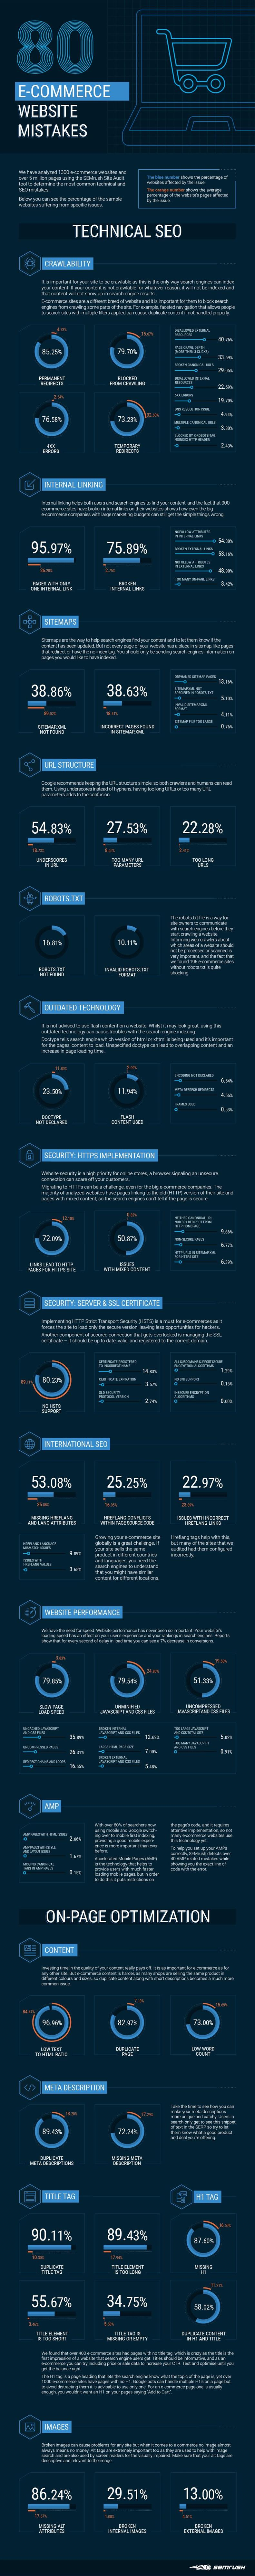 80 Common SEO and Technical Mistakes on E-Commerce Websites [Infographic]